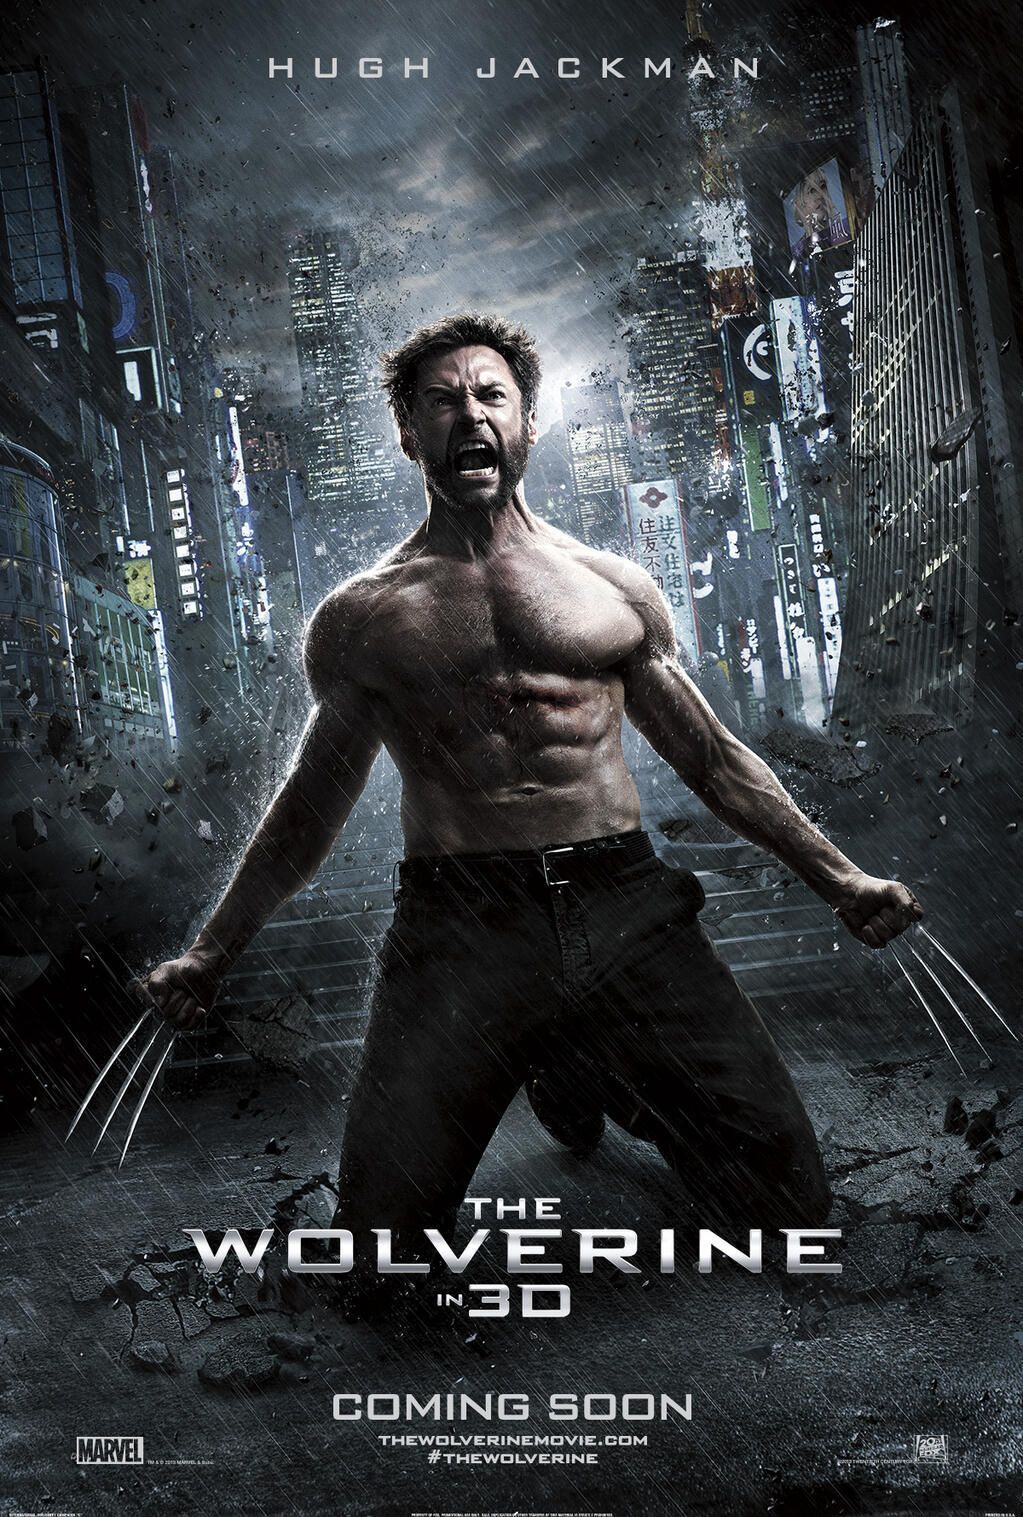 The Wolverine 2013 Hated This Film With The Exception Of The